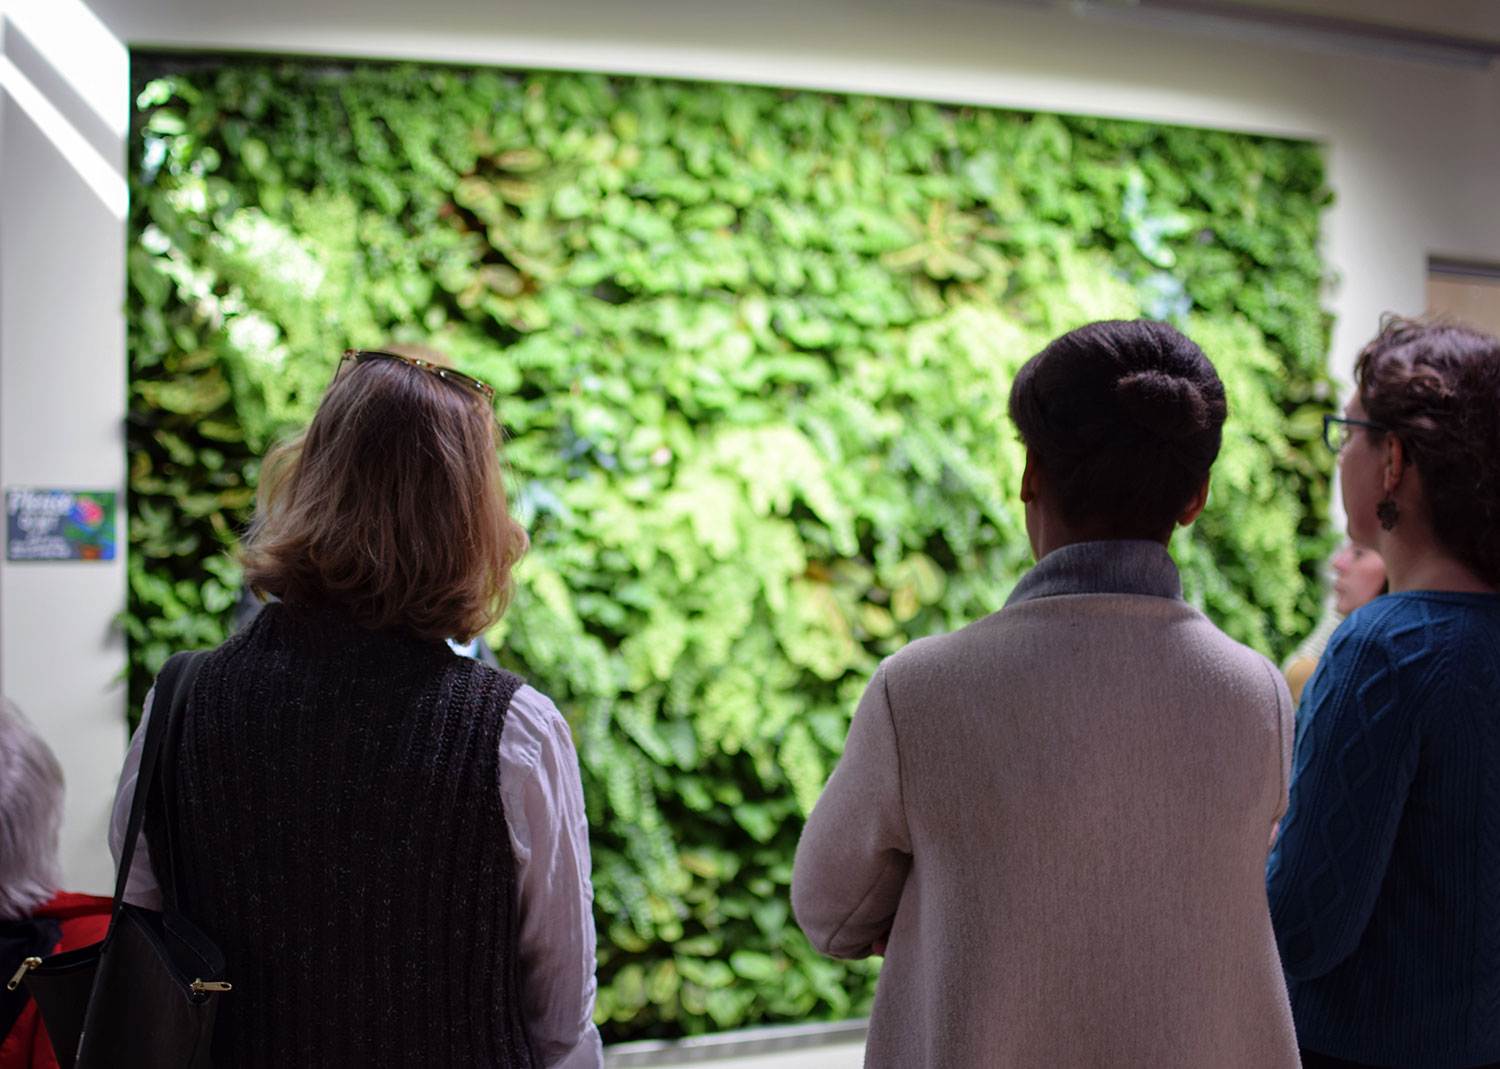 The green wall, made of living plants and supported by the building's graywater, brings the outside in.